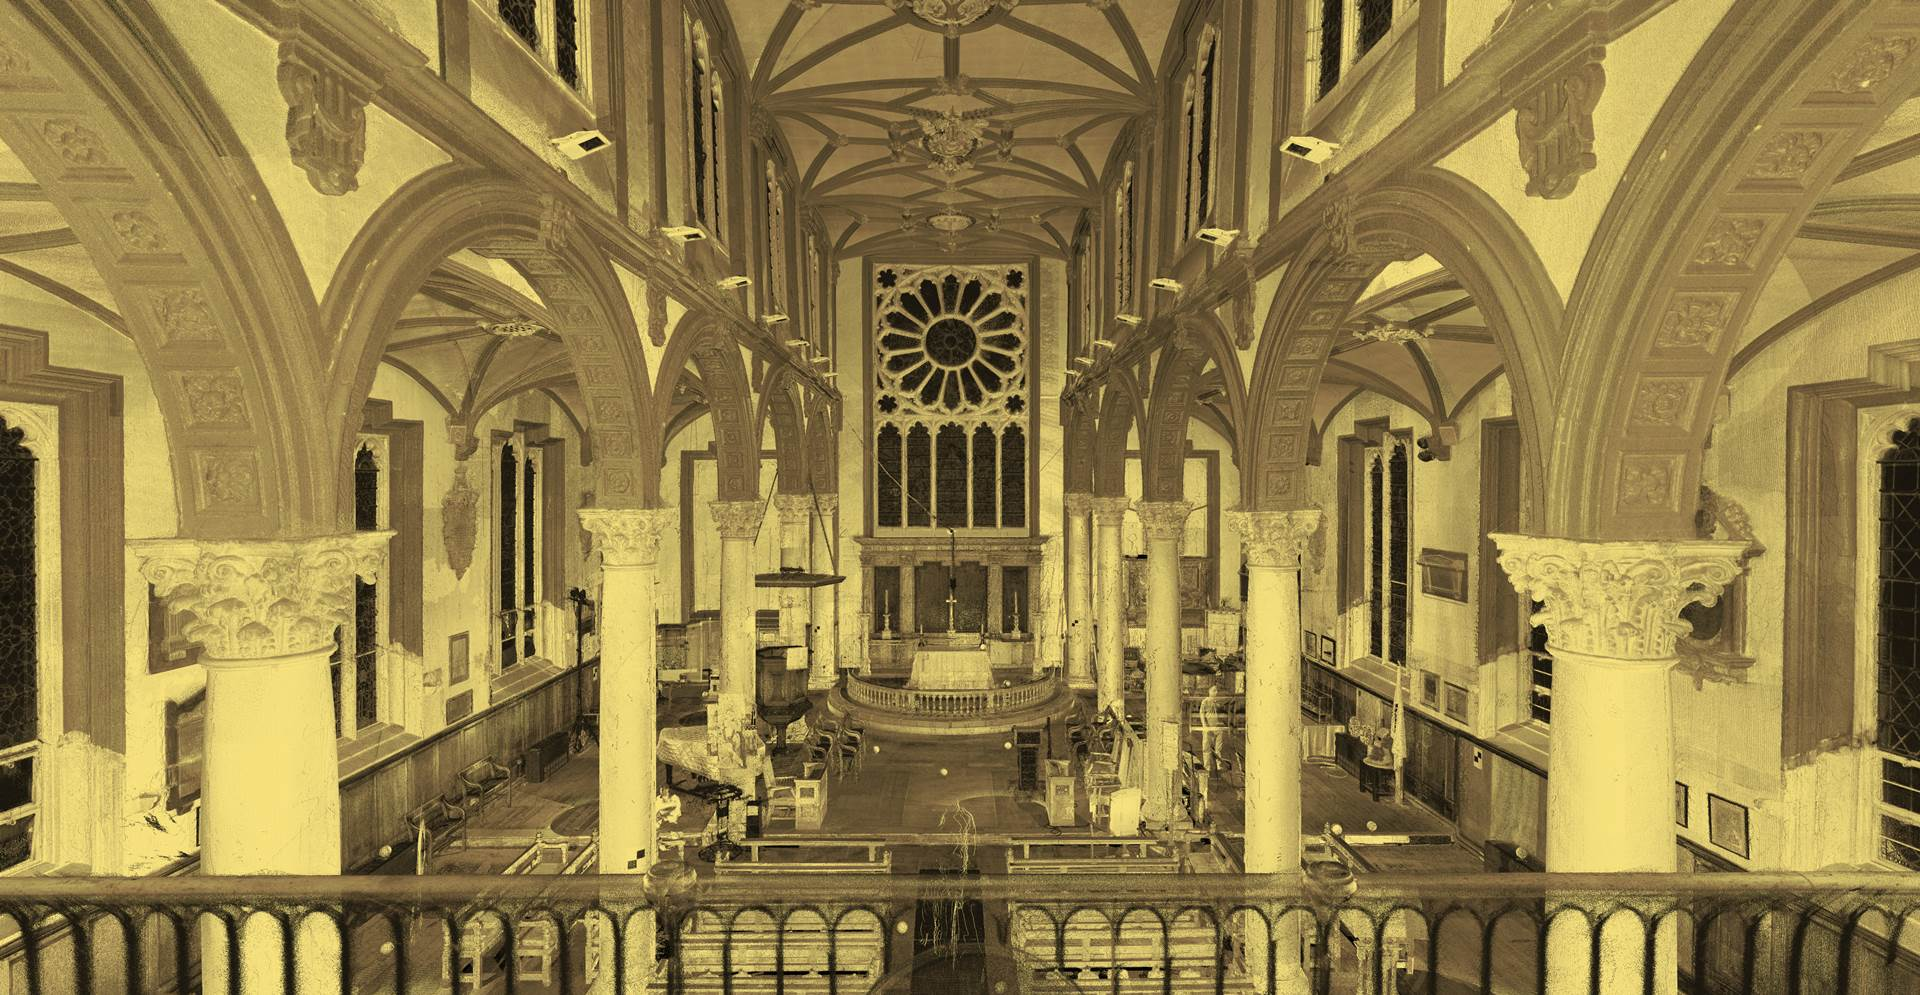 The Renovation of St. Katharine Cree - Leadenhall Street